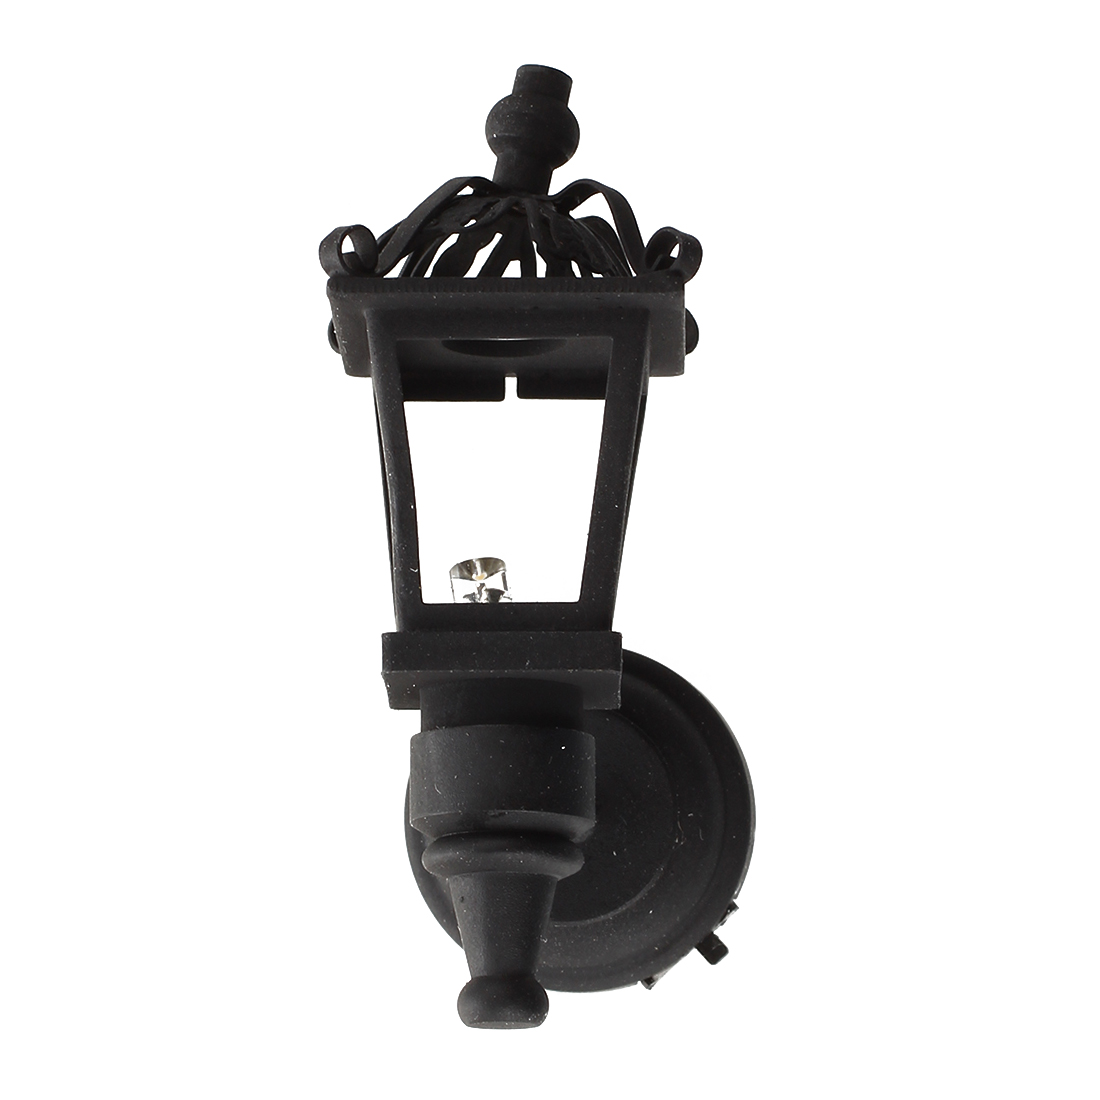 Black Metal <font><b>1</b></font>/ <font><b>12</b></font> Dollhouse Miniature LED Wall Light Model image